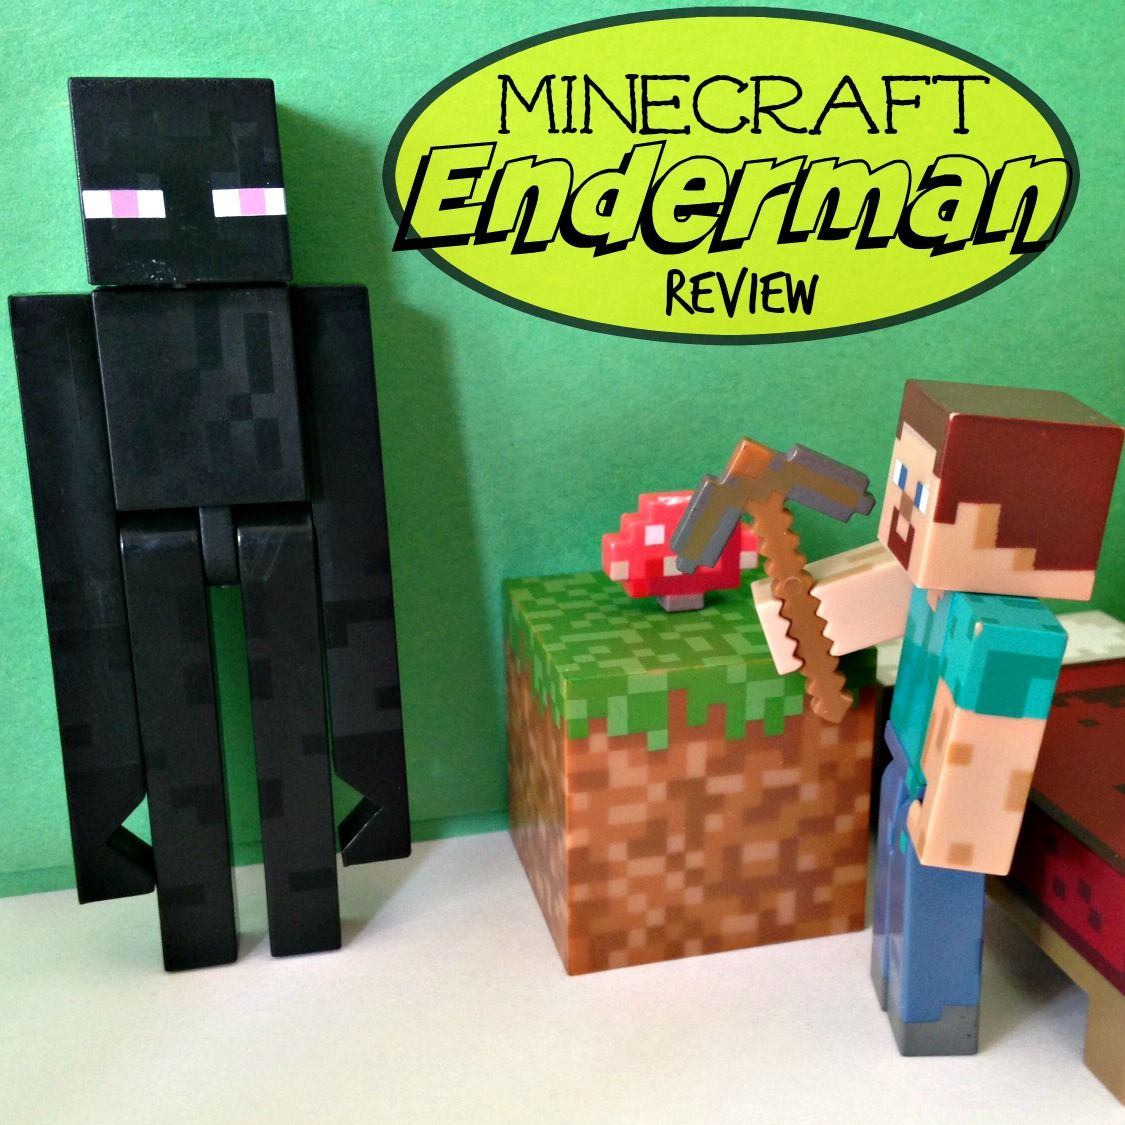 Best Toys Gift Ideas For 9 Year Old Girls In 2018: Minecraft Enderman Action Figure